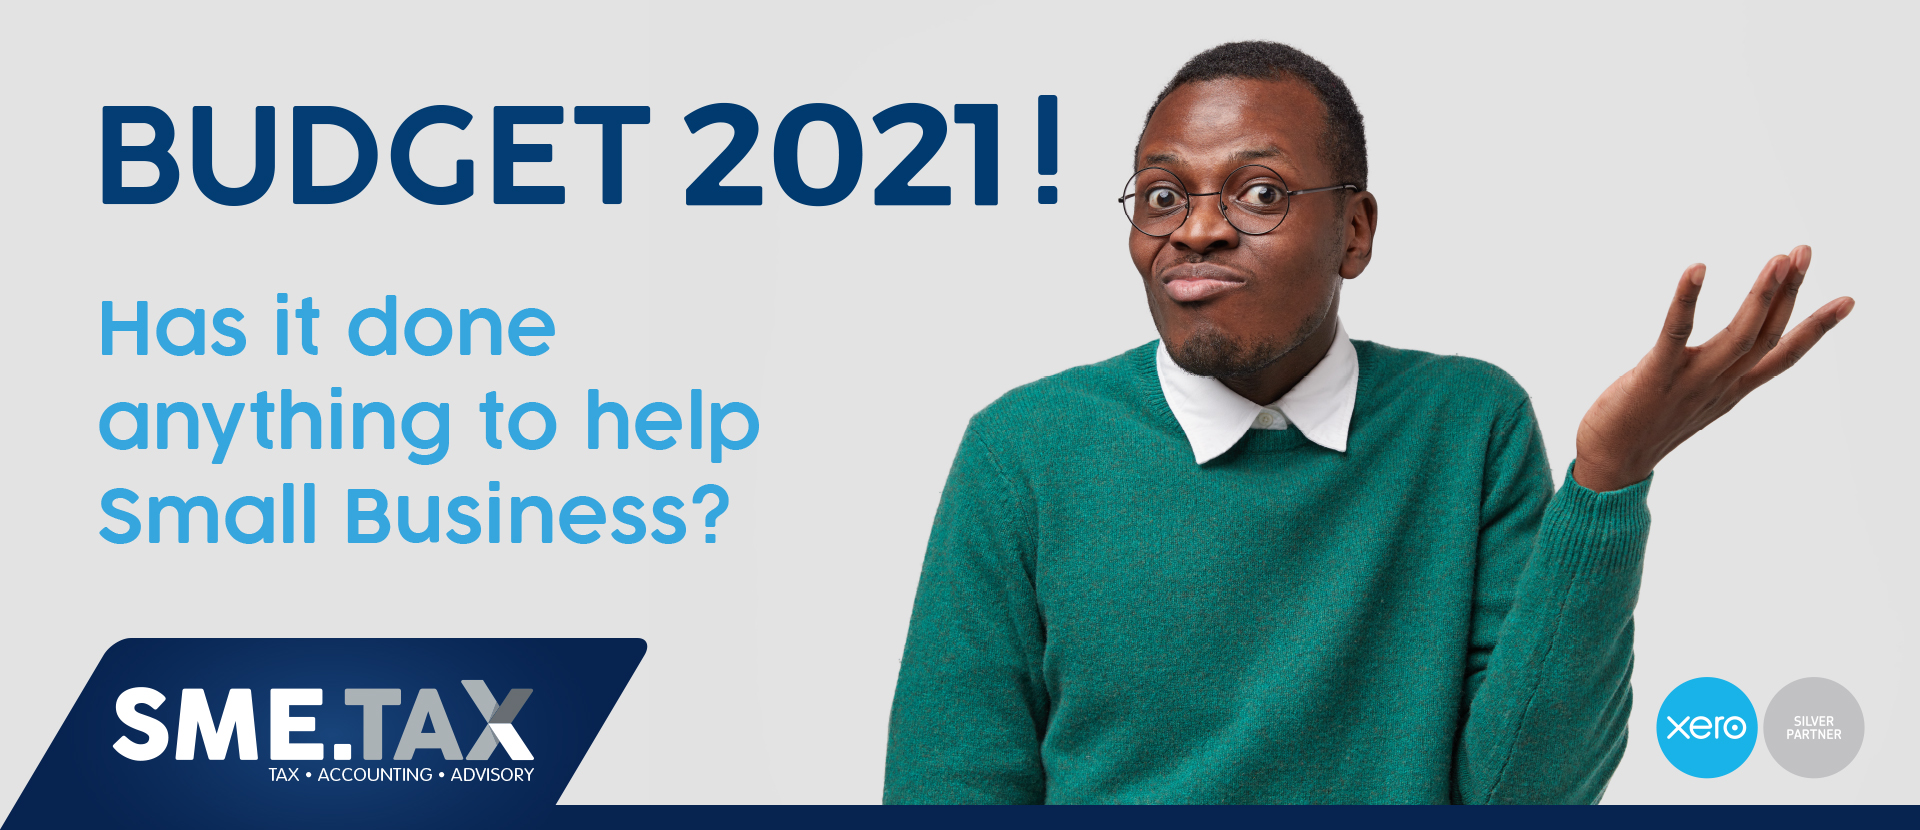 BUDGET 2021! – Has it done anything to help Small Business? 3